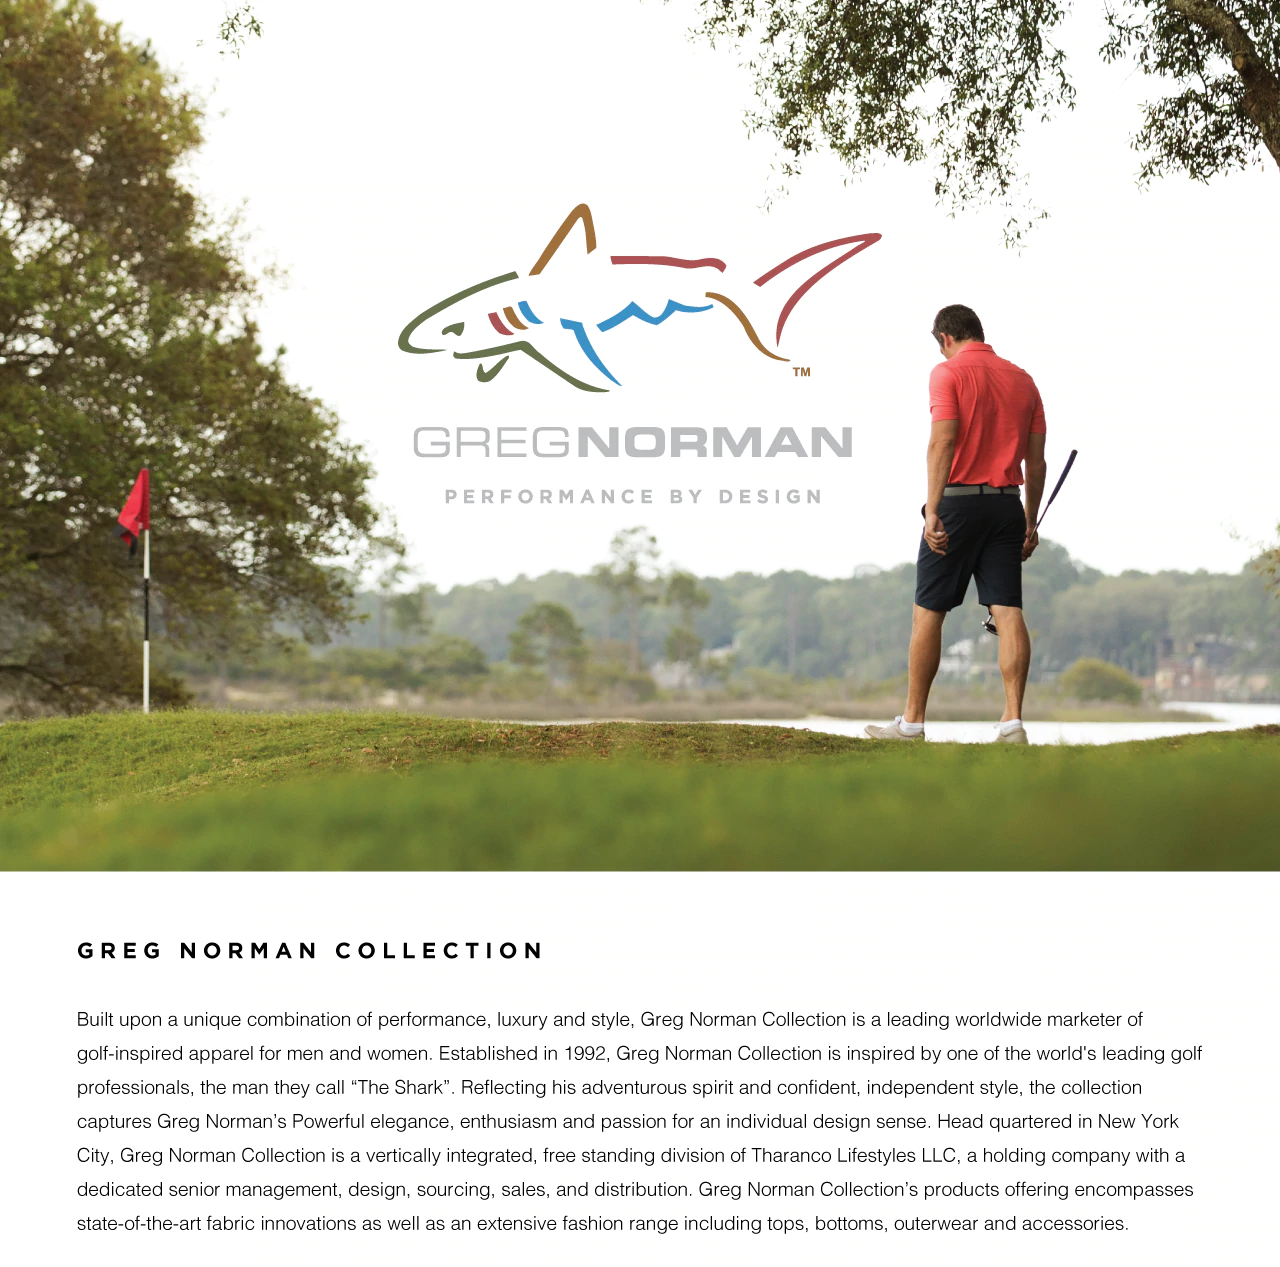 About Greg Norman Collection